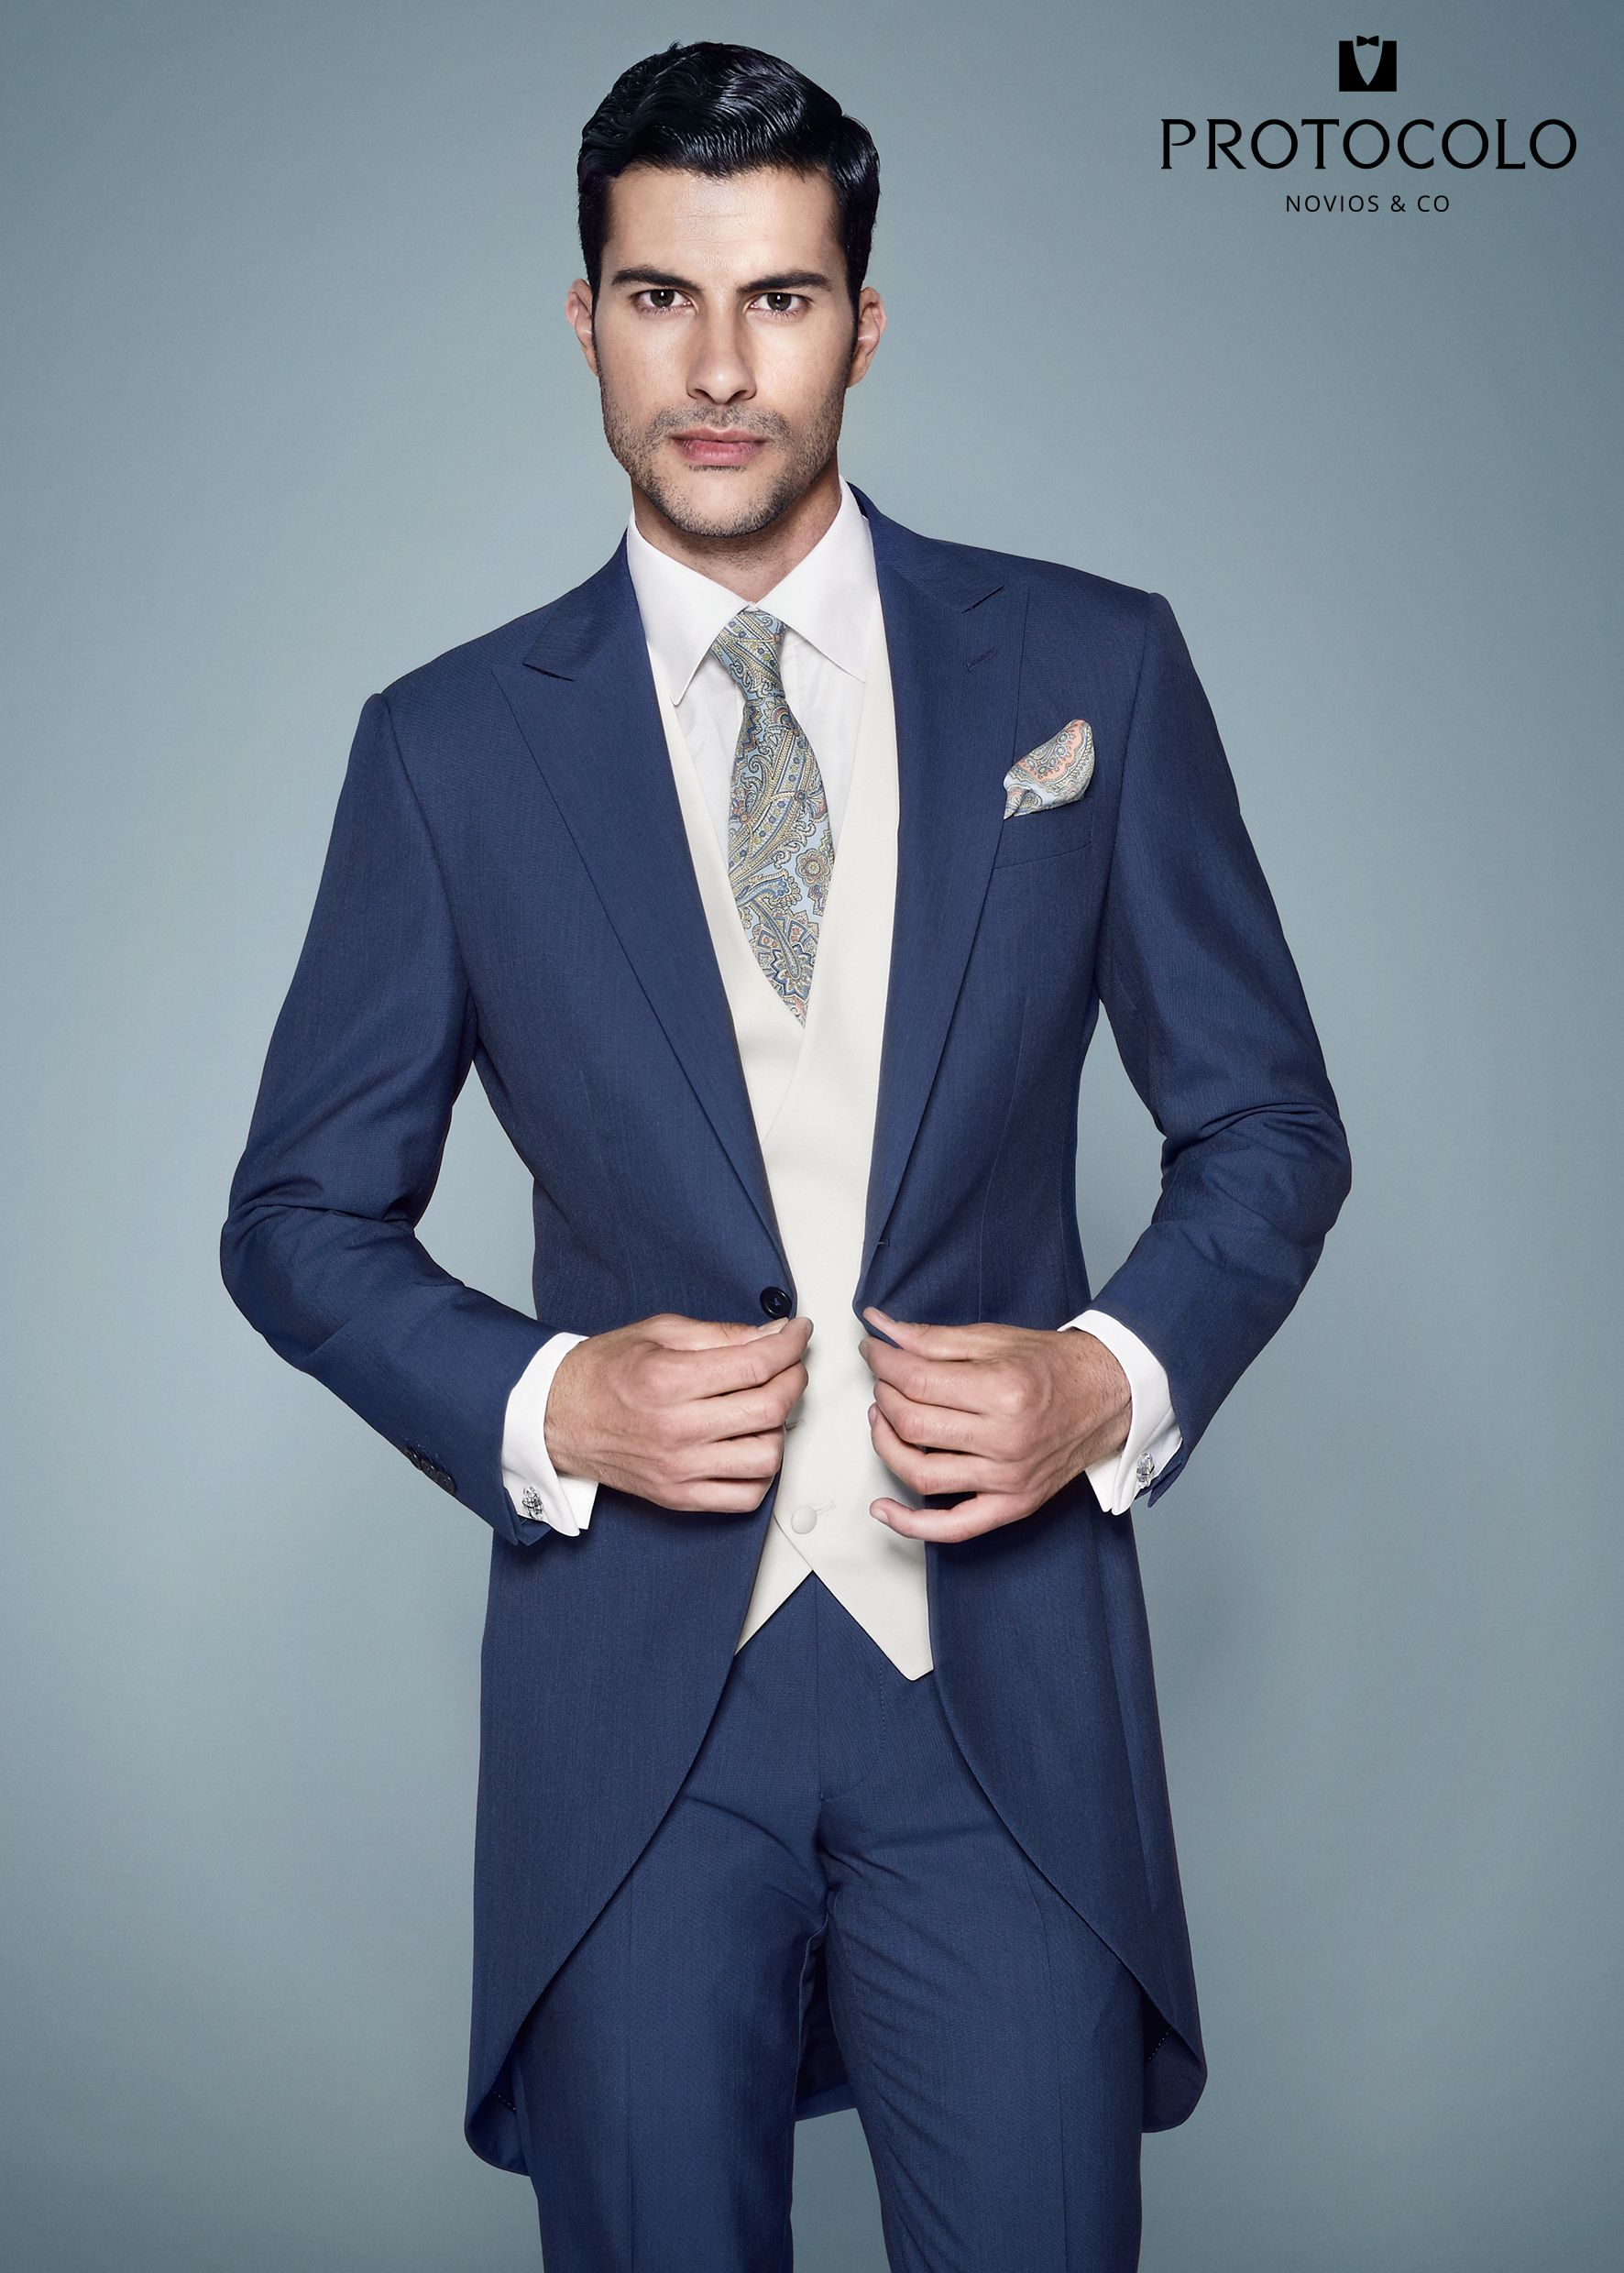 CHAQUÉ LORETO AZUL DE PROTOCOLO | Men Fashion | Pinterest | Wedding ...